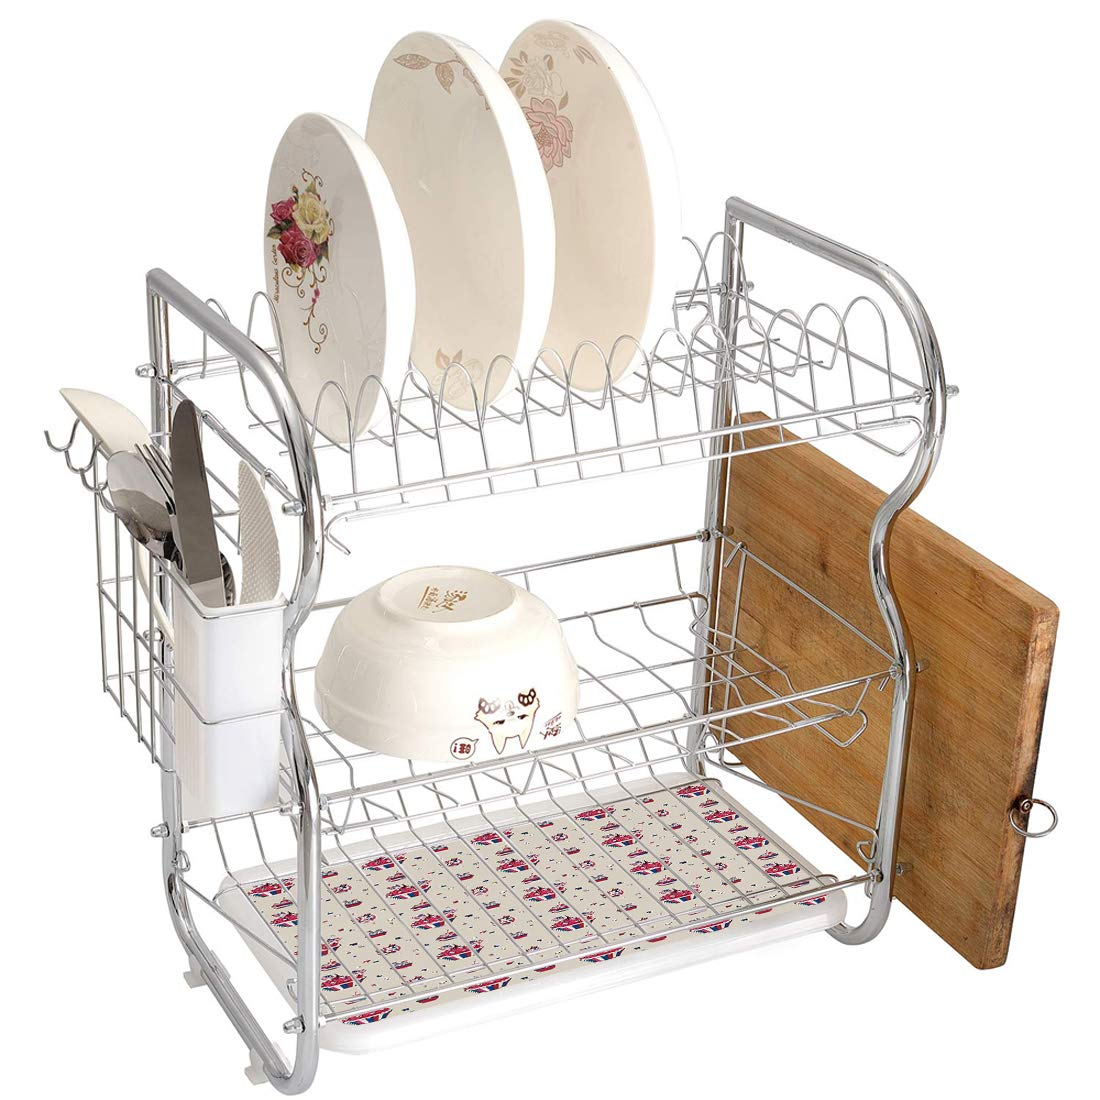 Stainless Steel 3-Tier Dish Drainer Rack USA Kitchen Drying Drip Tray Cutlery Holder Cupcakes with National Flags Cute Cafe Yummy Homeland July Fourth Caricature Decorative,Beige Navy Blue Red,Storage by Smallgrid